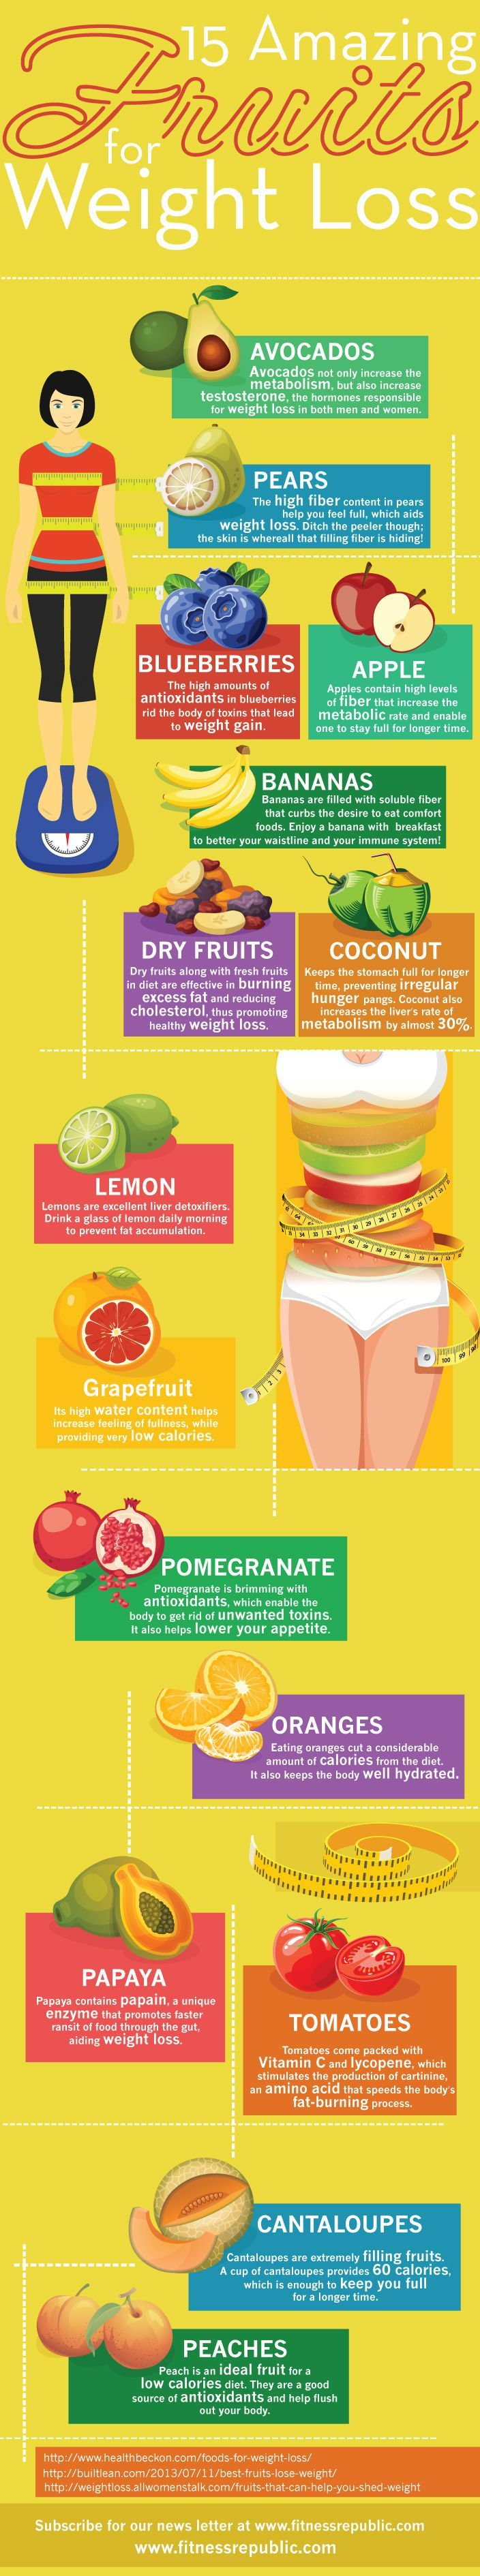 Fruit for the win!! ~ 15 Amazing Fruits for Weight Loss